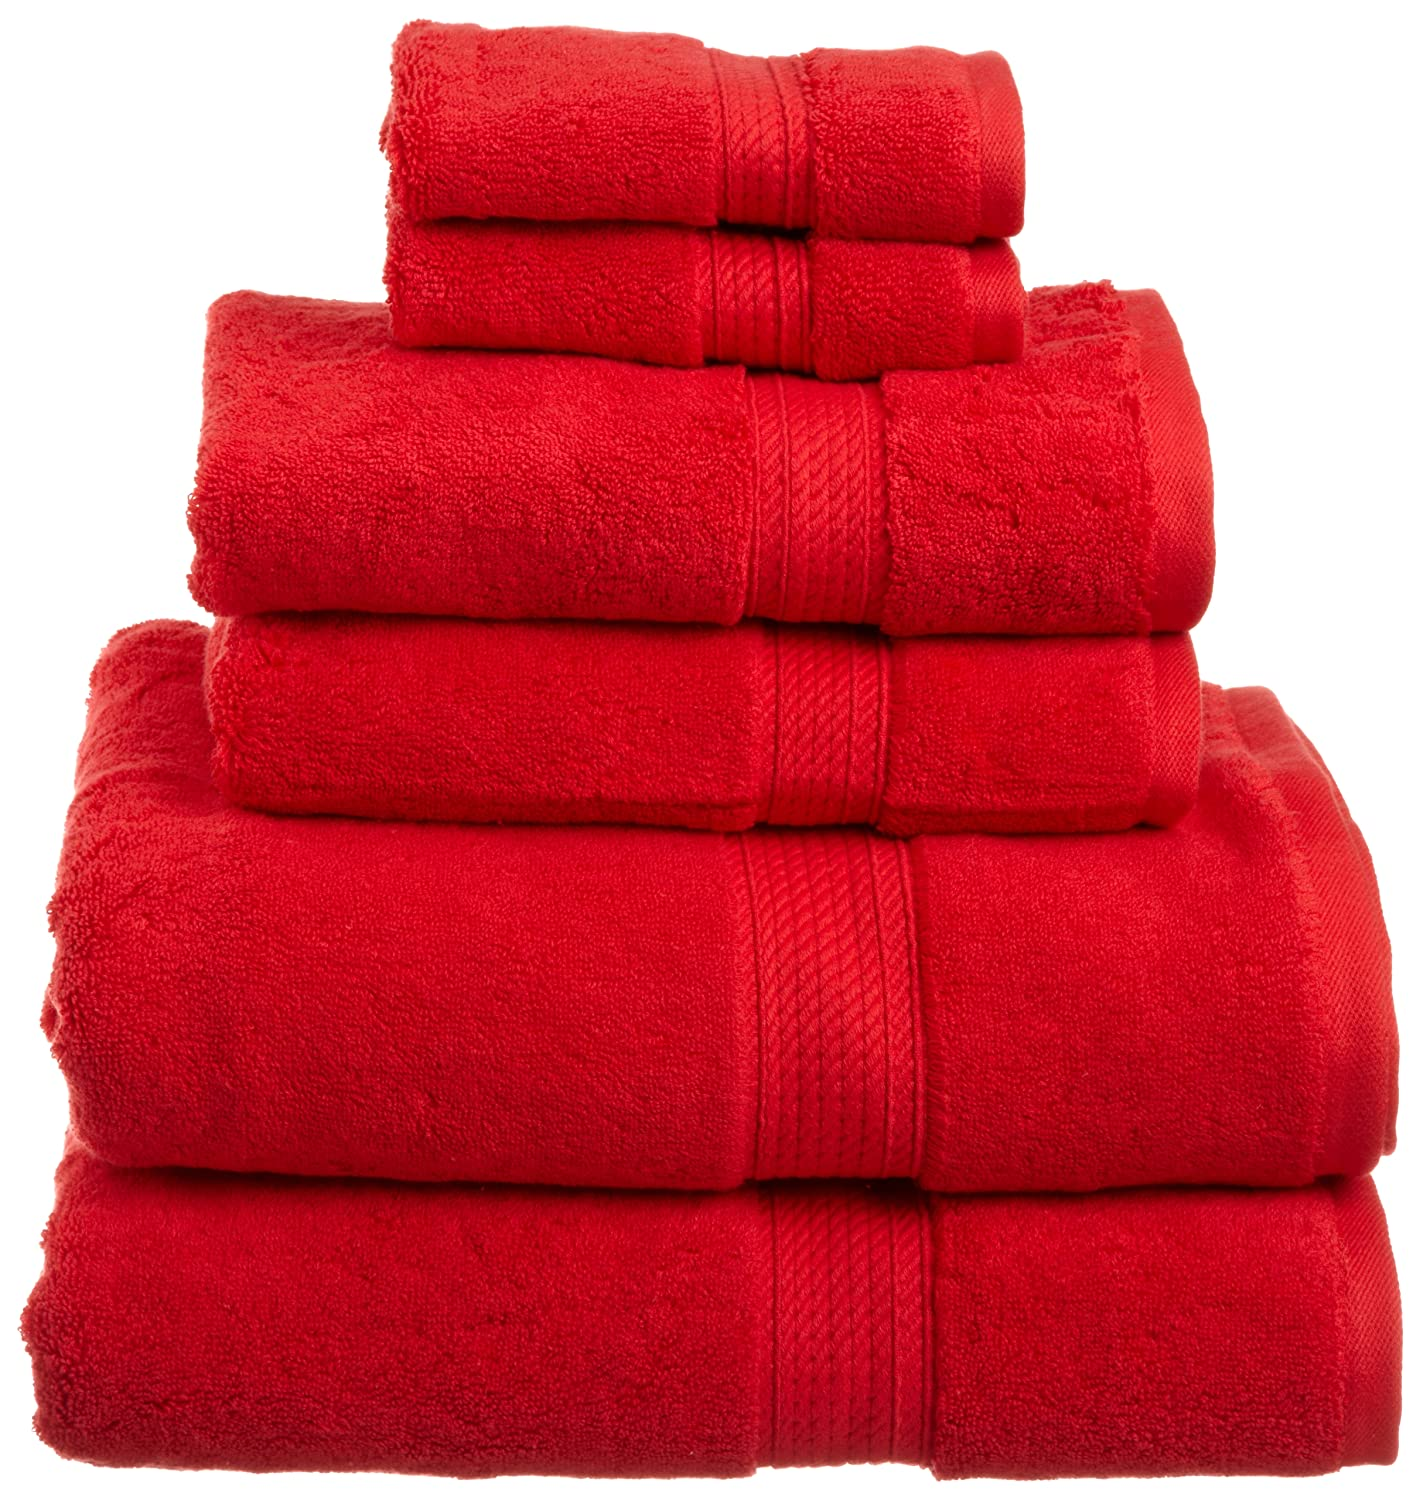 superior 900 gsm luxury bathroom 6 piece towel set made of 100 premium ebay. Black Bedroom Furniture Sets. Home Design Ideas